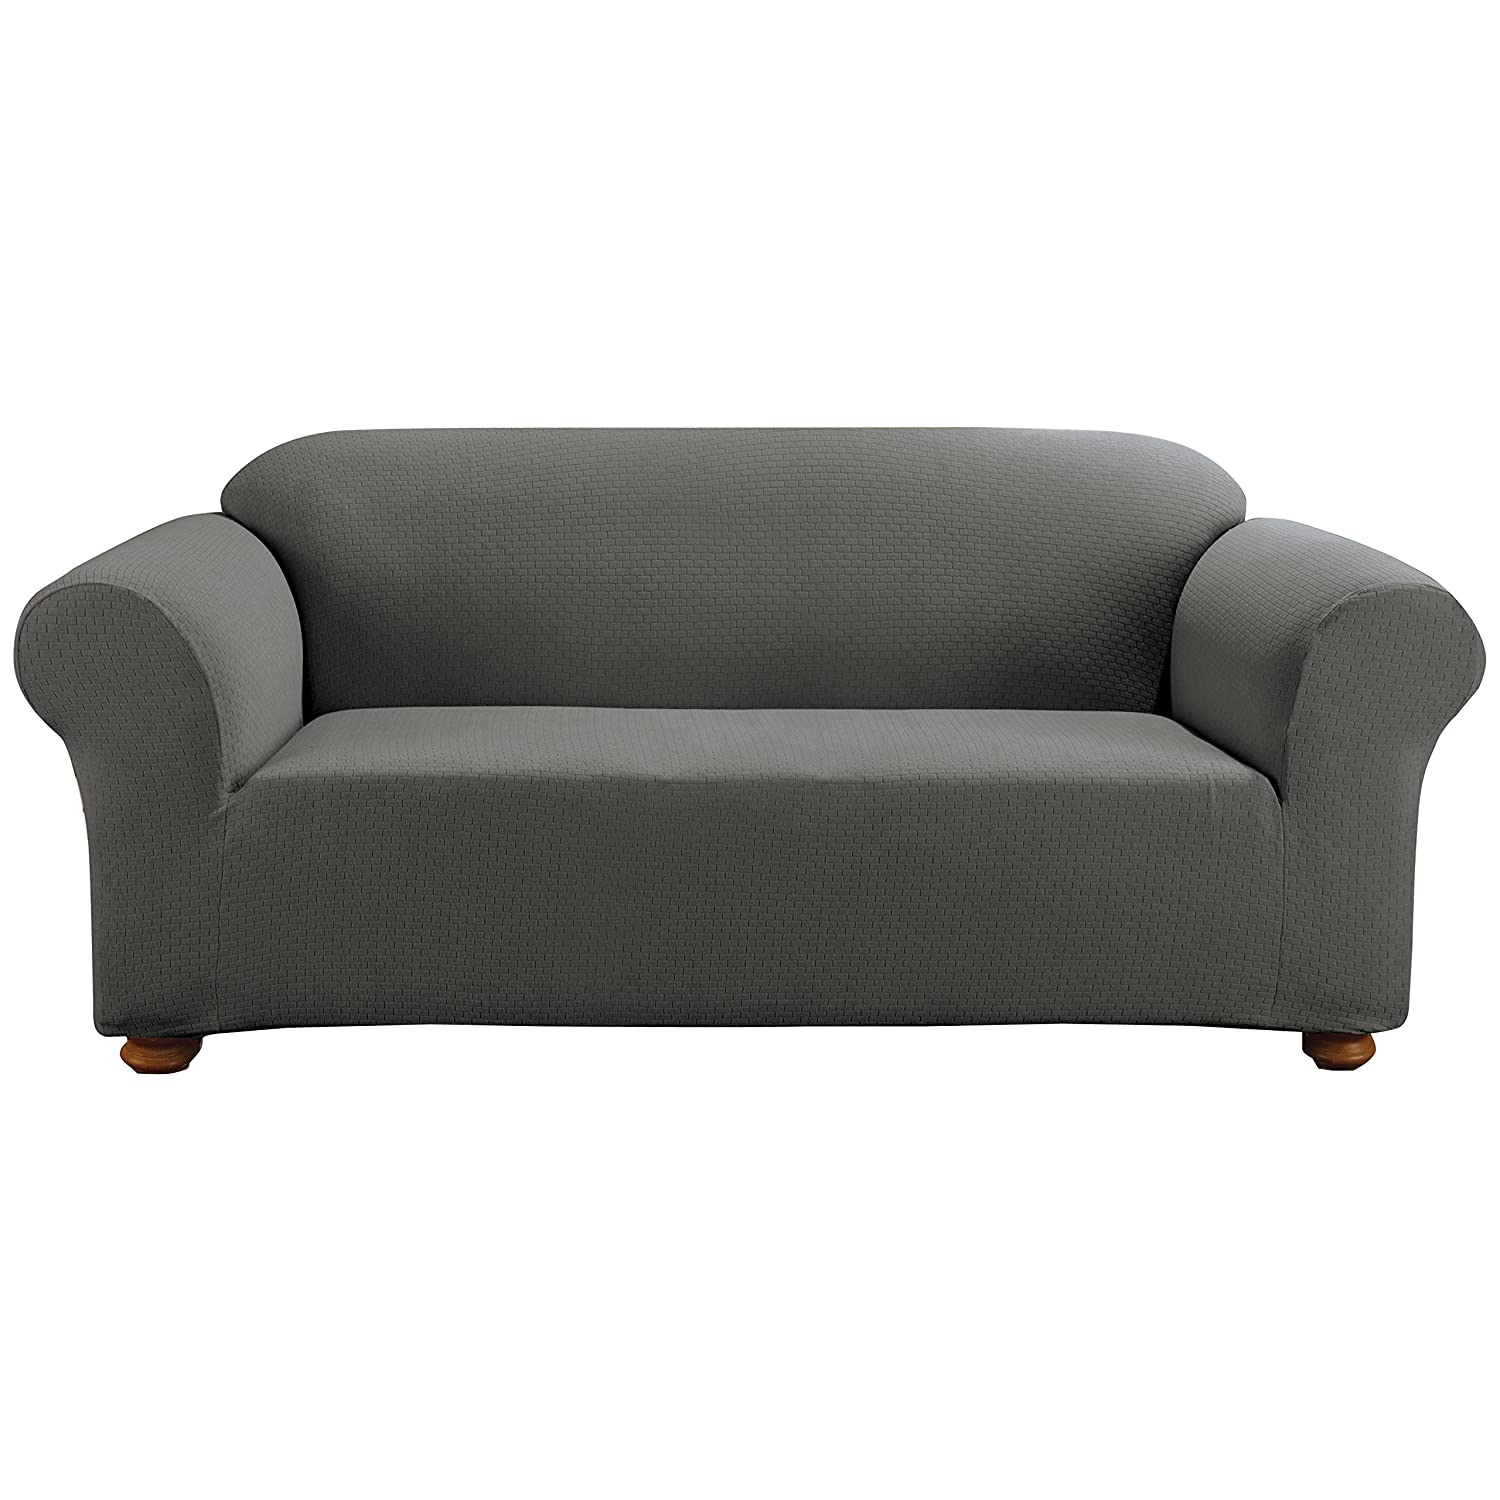 Attractive Amazon.com: Sure Fit Simple Stretch Subway 1 Piece   Sofa Slipcover    Carbon Gray (SF44250): Kitchen U0026 Dining